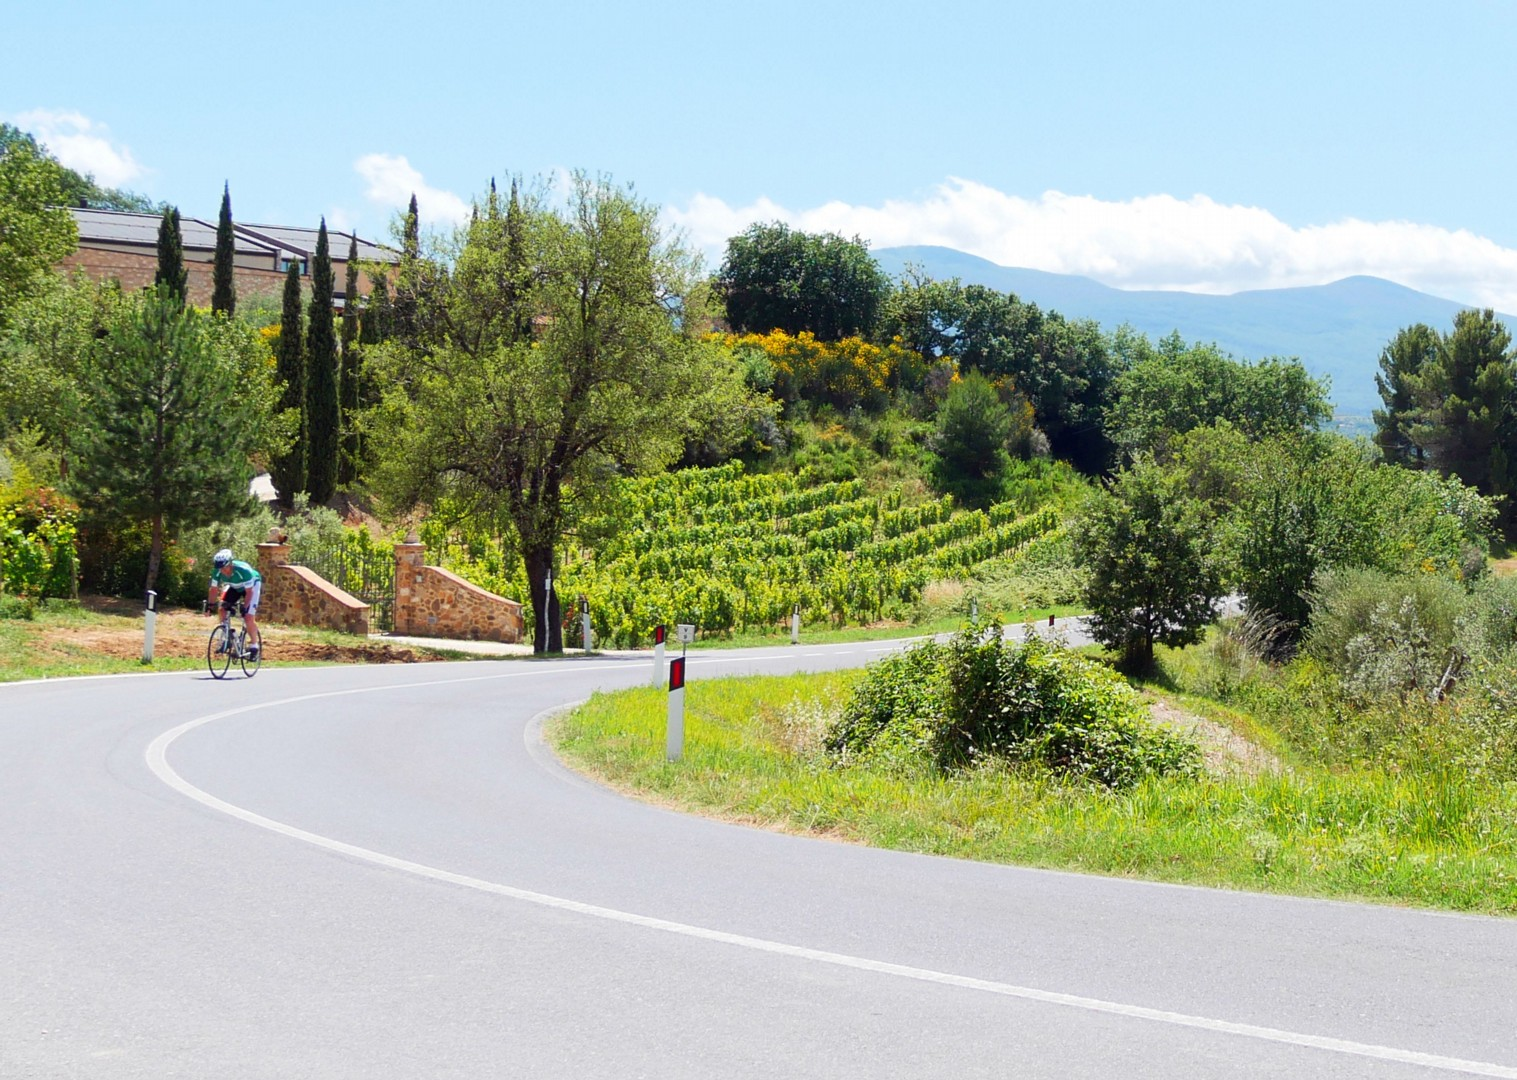 tuscany-tourer-self-guided-road-cycling.jpg - Italy - Tuscany Tourer - Self Guided Road Cycling Holiday - Road Cycling